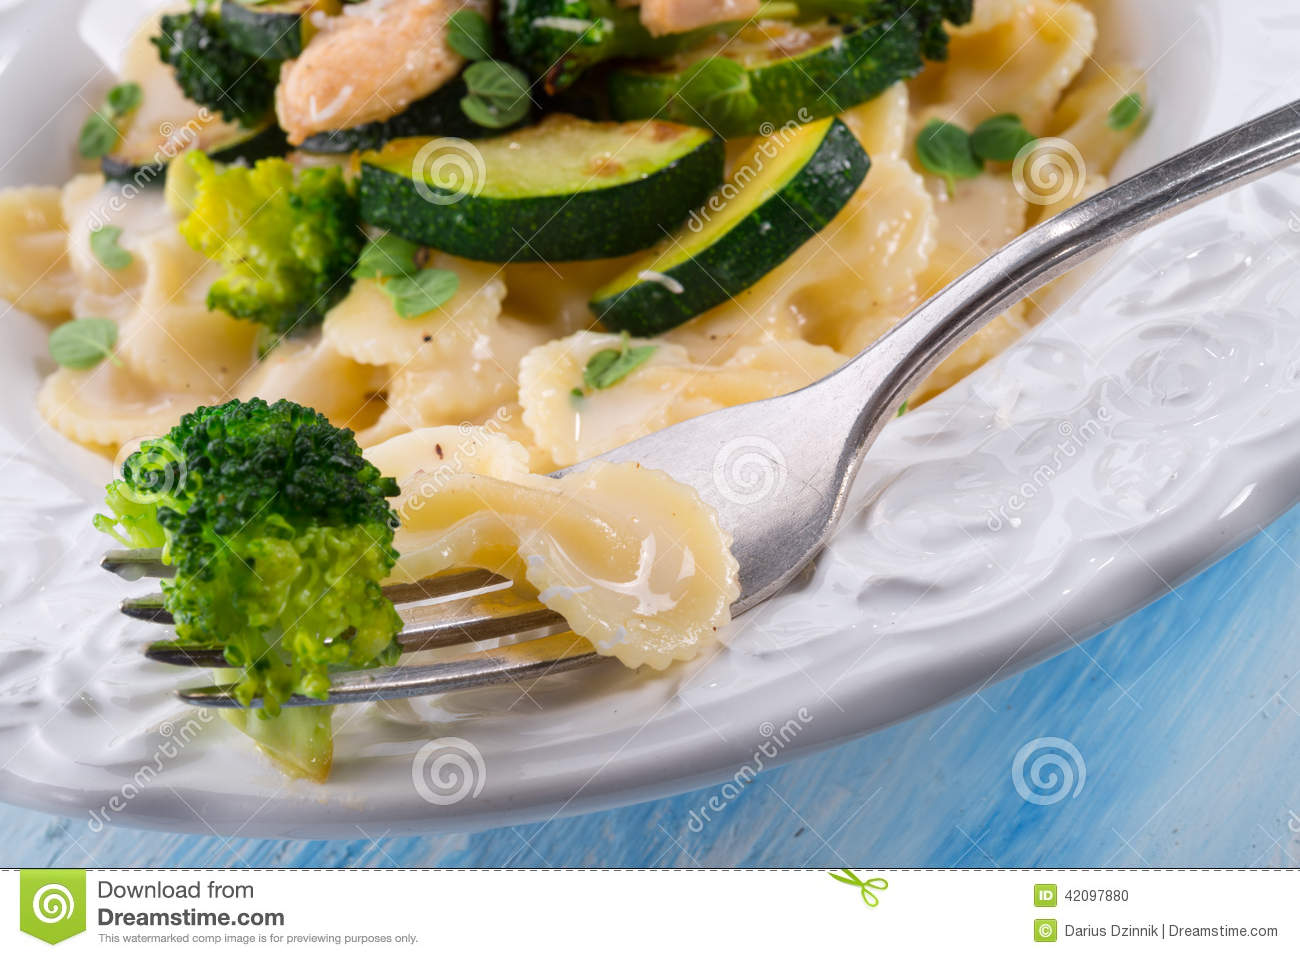 Farfalle Pasta With Zucchini And Broccoli Stock Photo - Image ...